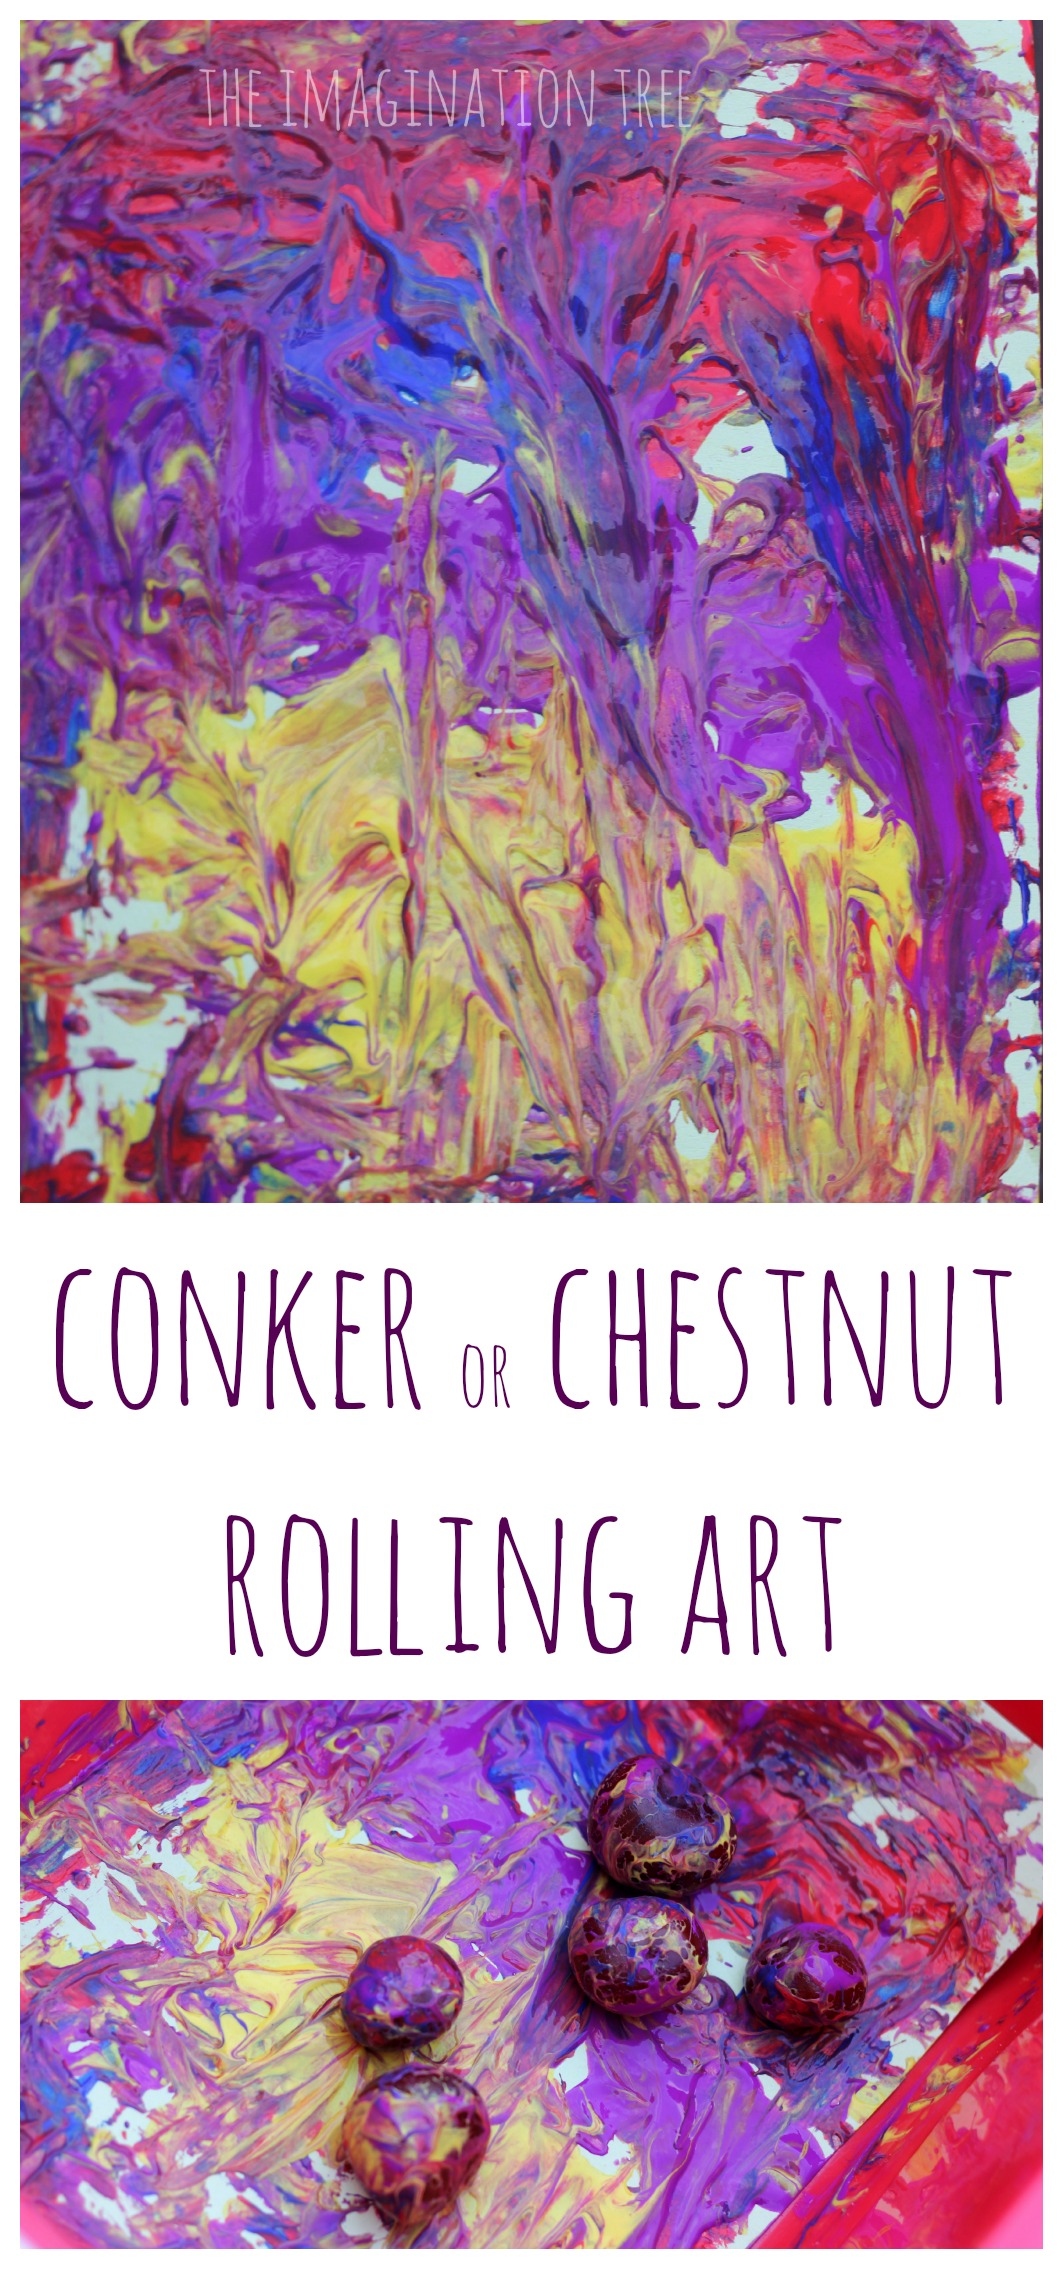 Rock And Roll Painting With Conkers The Imagination Tree